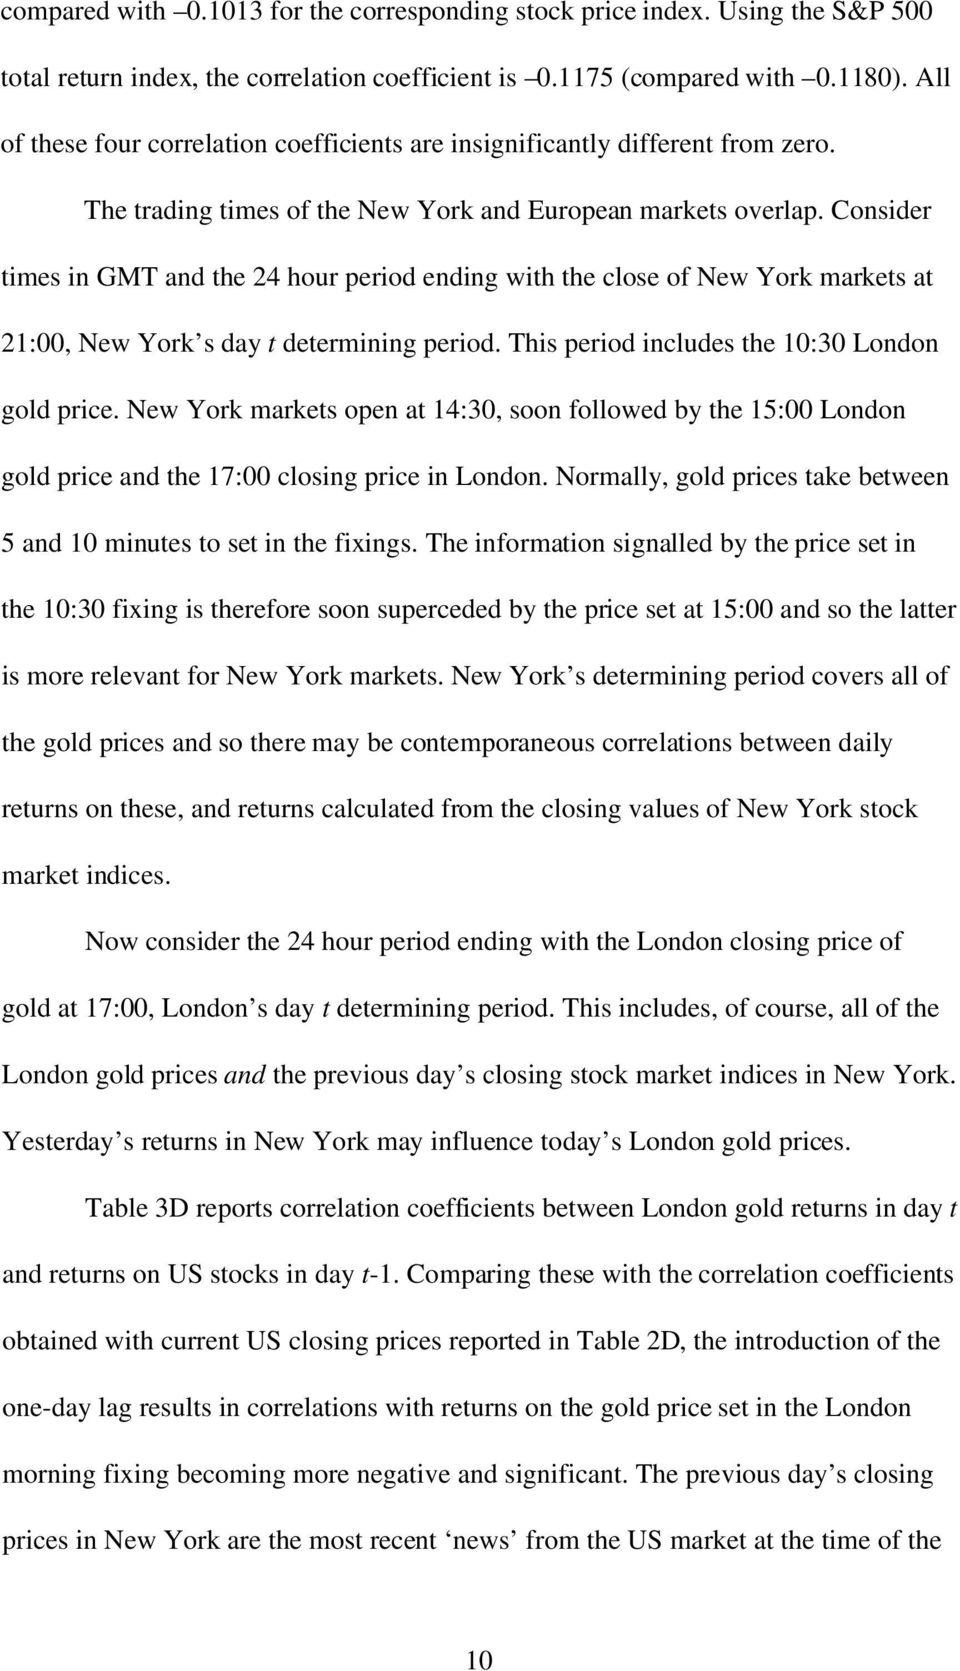 Consider times in GMT and the 24 hour period ending with the close of New York markets at 21:00, New York s day t determining period. This period includes the 10:30 London gold price.